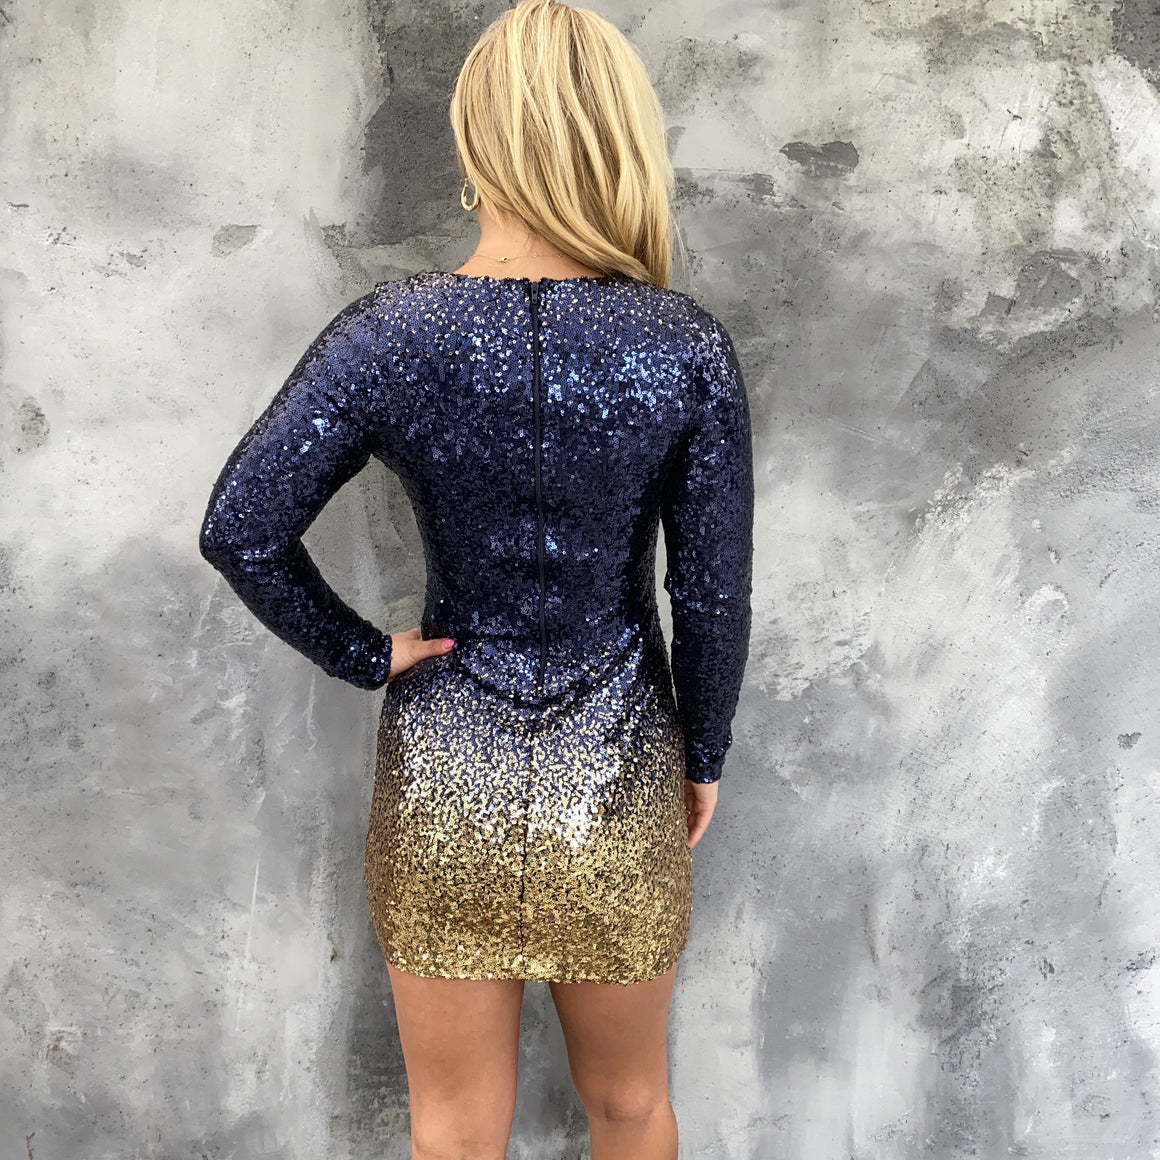 Beyond Expectations Ombre Sequin Bodycon Dress